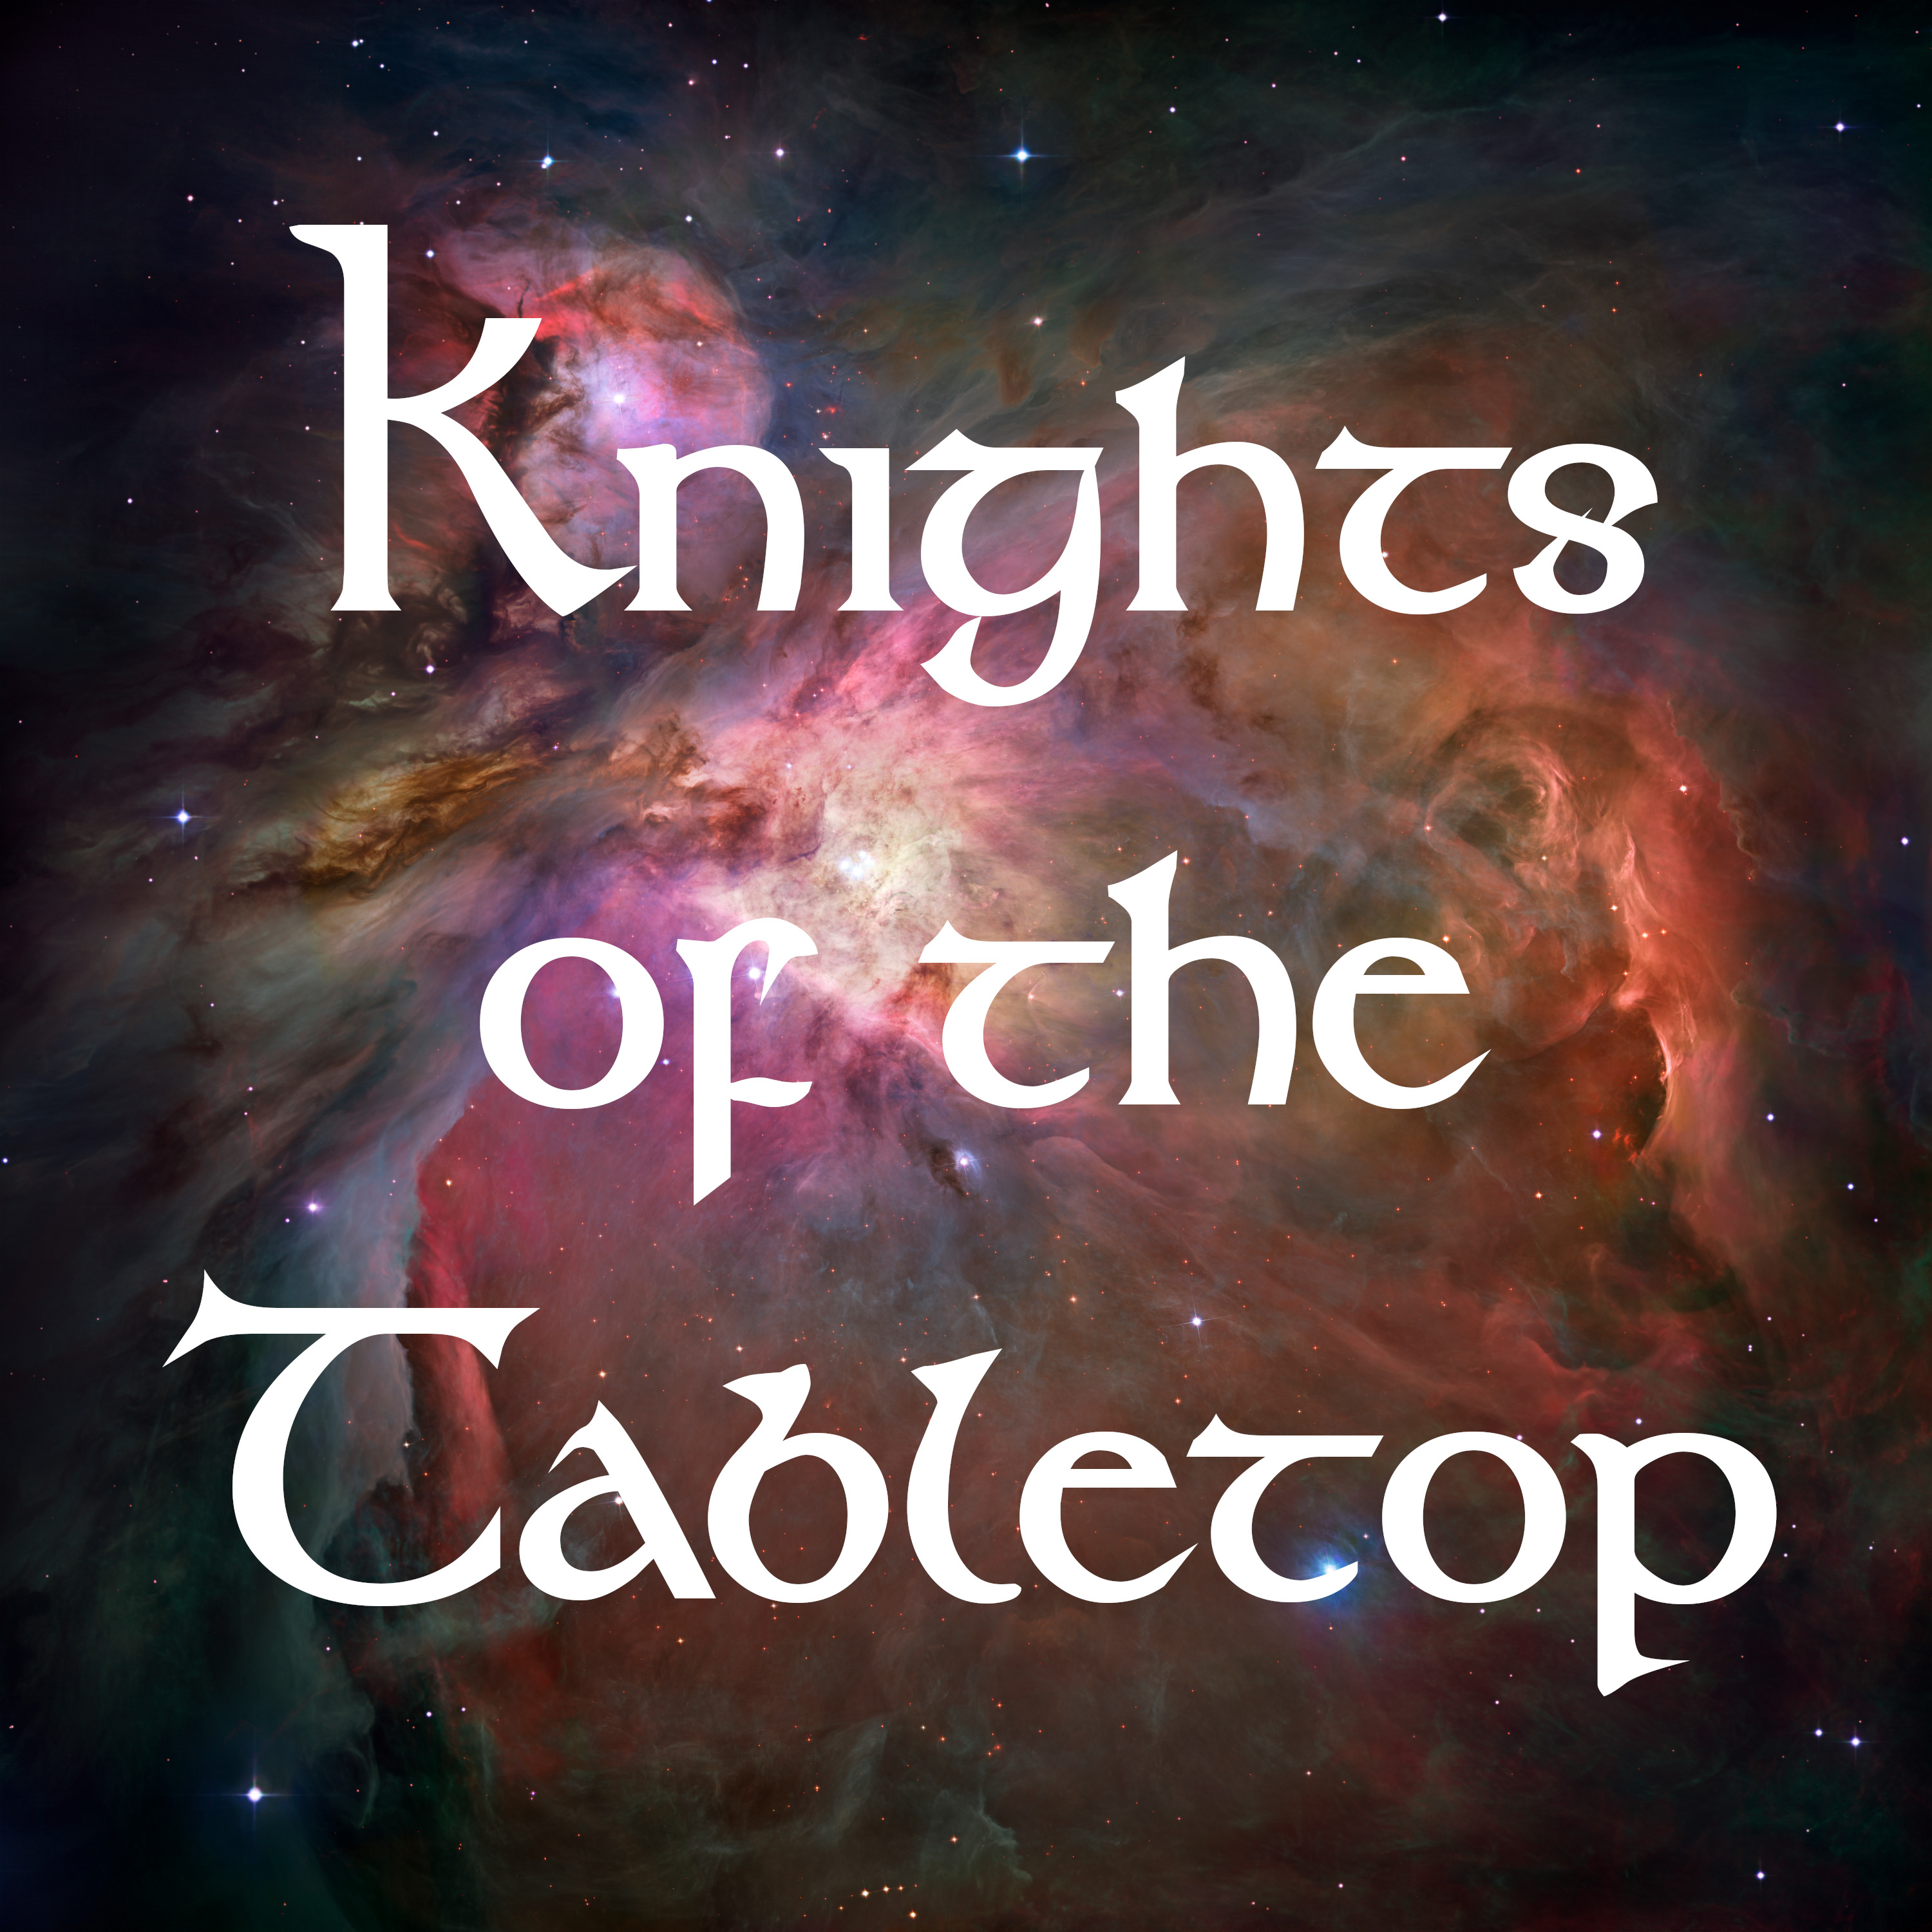 Knights of the Tabletop